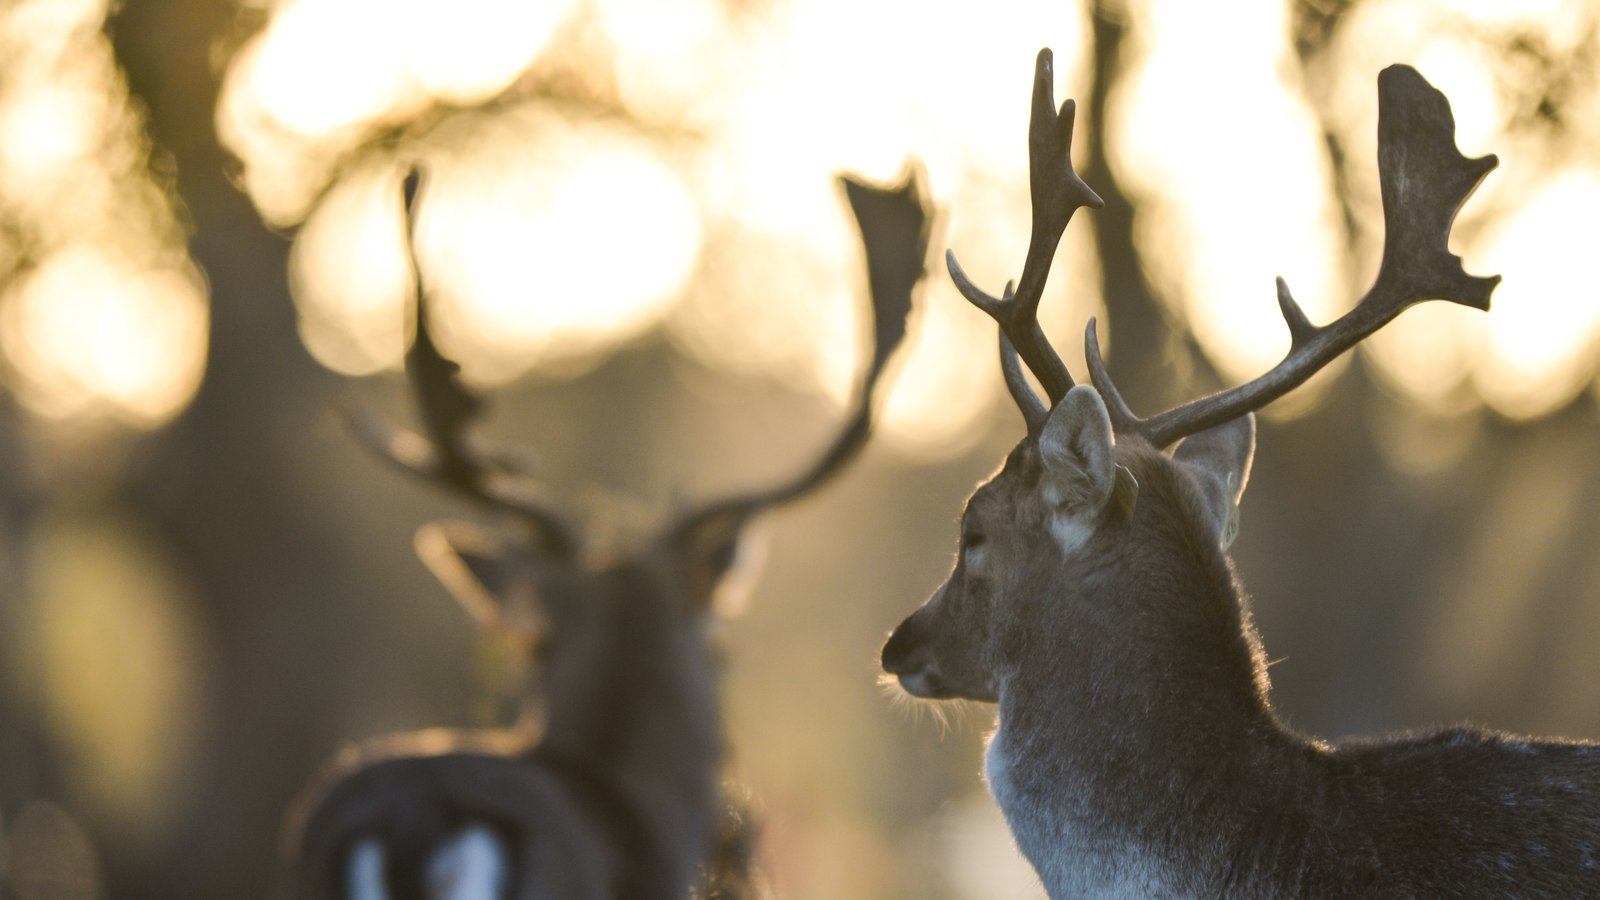 Image - Deer culling raises strong hostility among animal rights activists